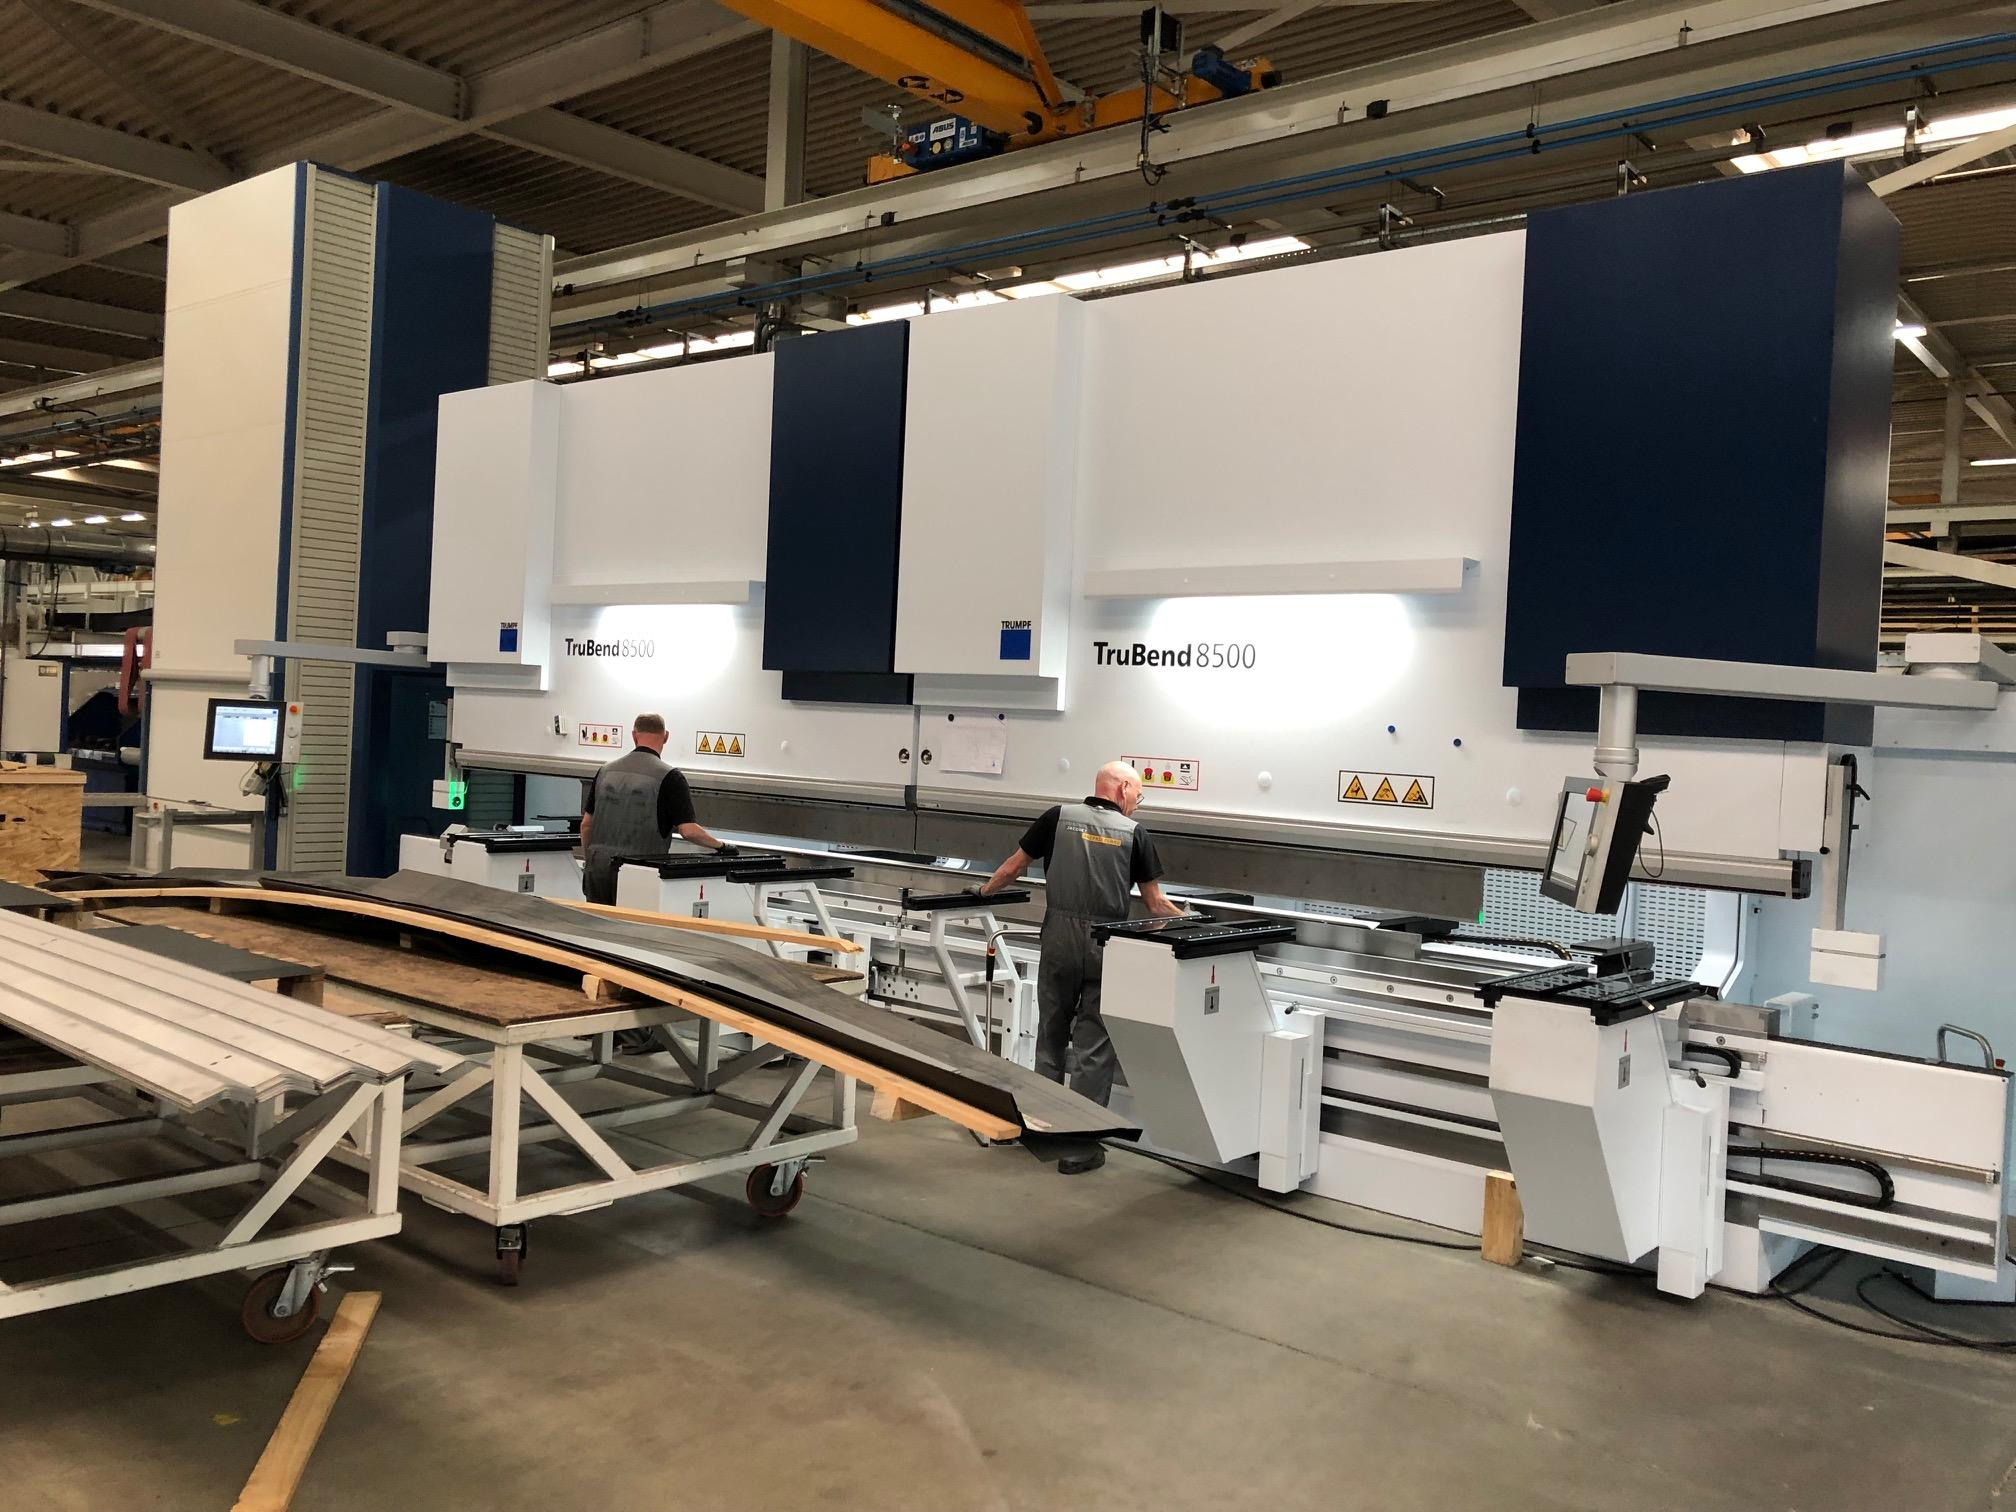 JACQUET Nederland - New Trubend 8500 tandem press brake